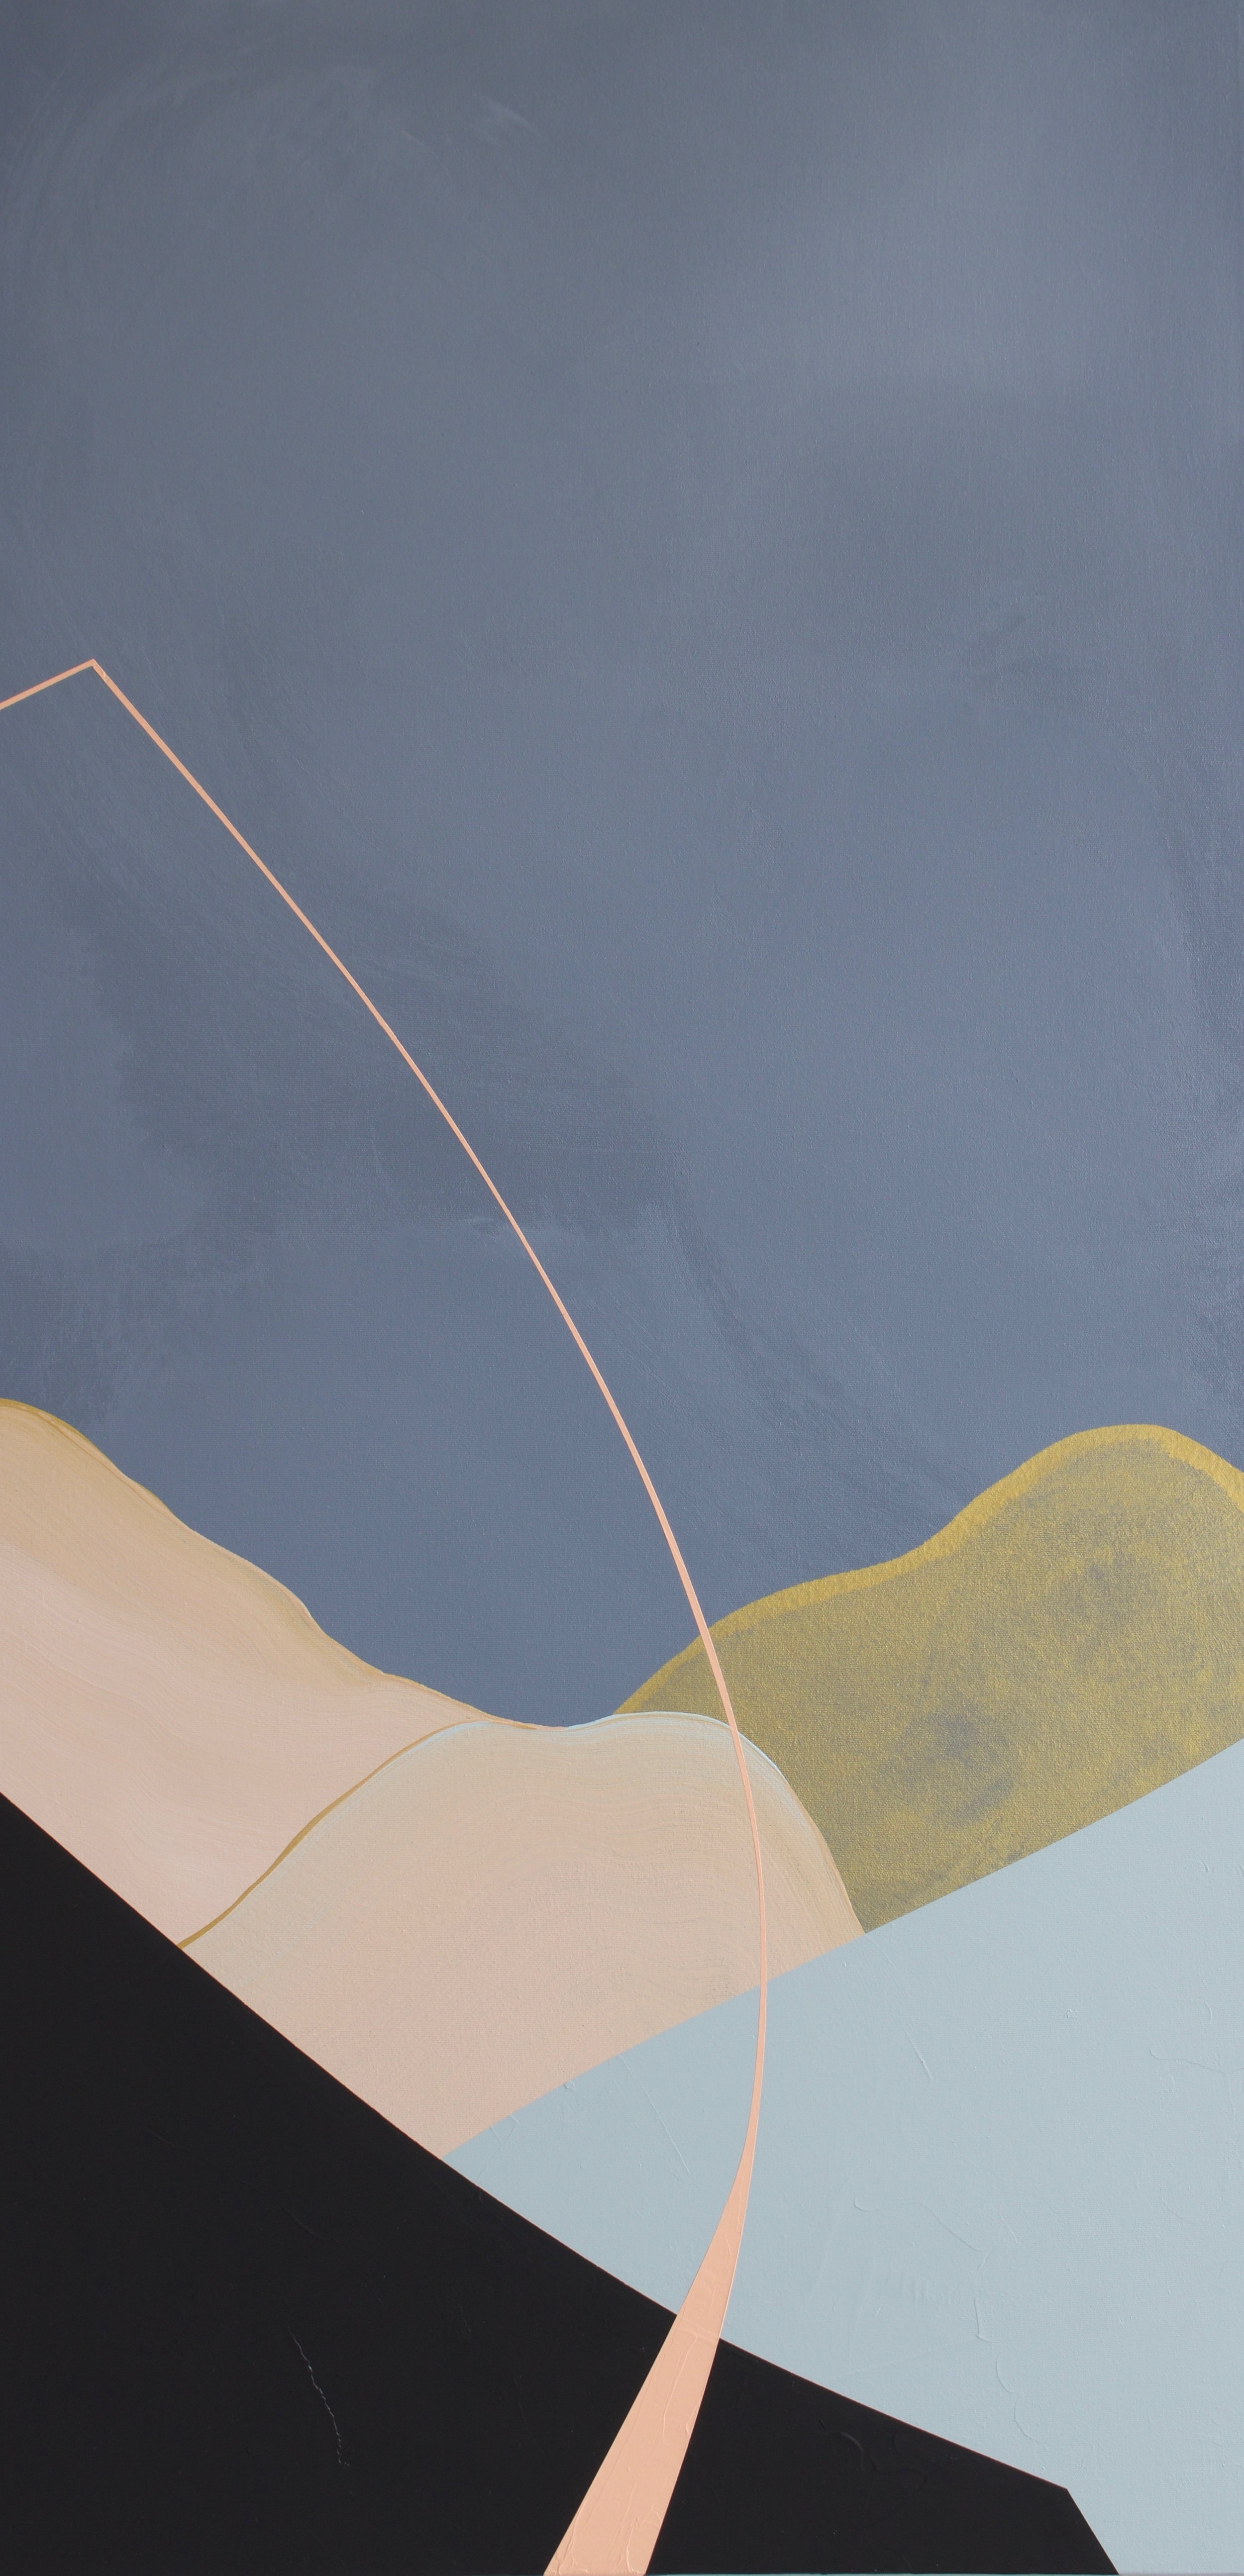 A Tickle Of The Toes  Mixed acrylic medium on canvas 48x24 inches $1050.00